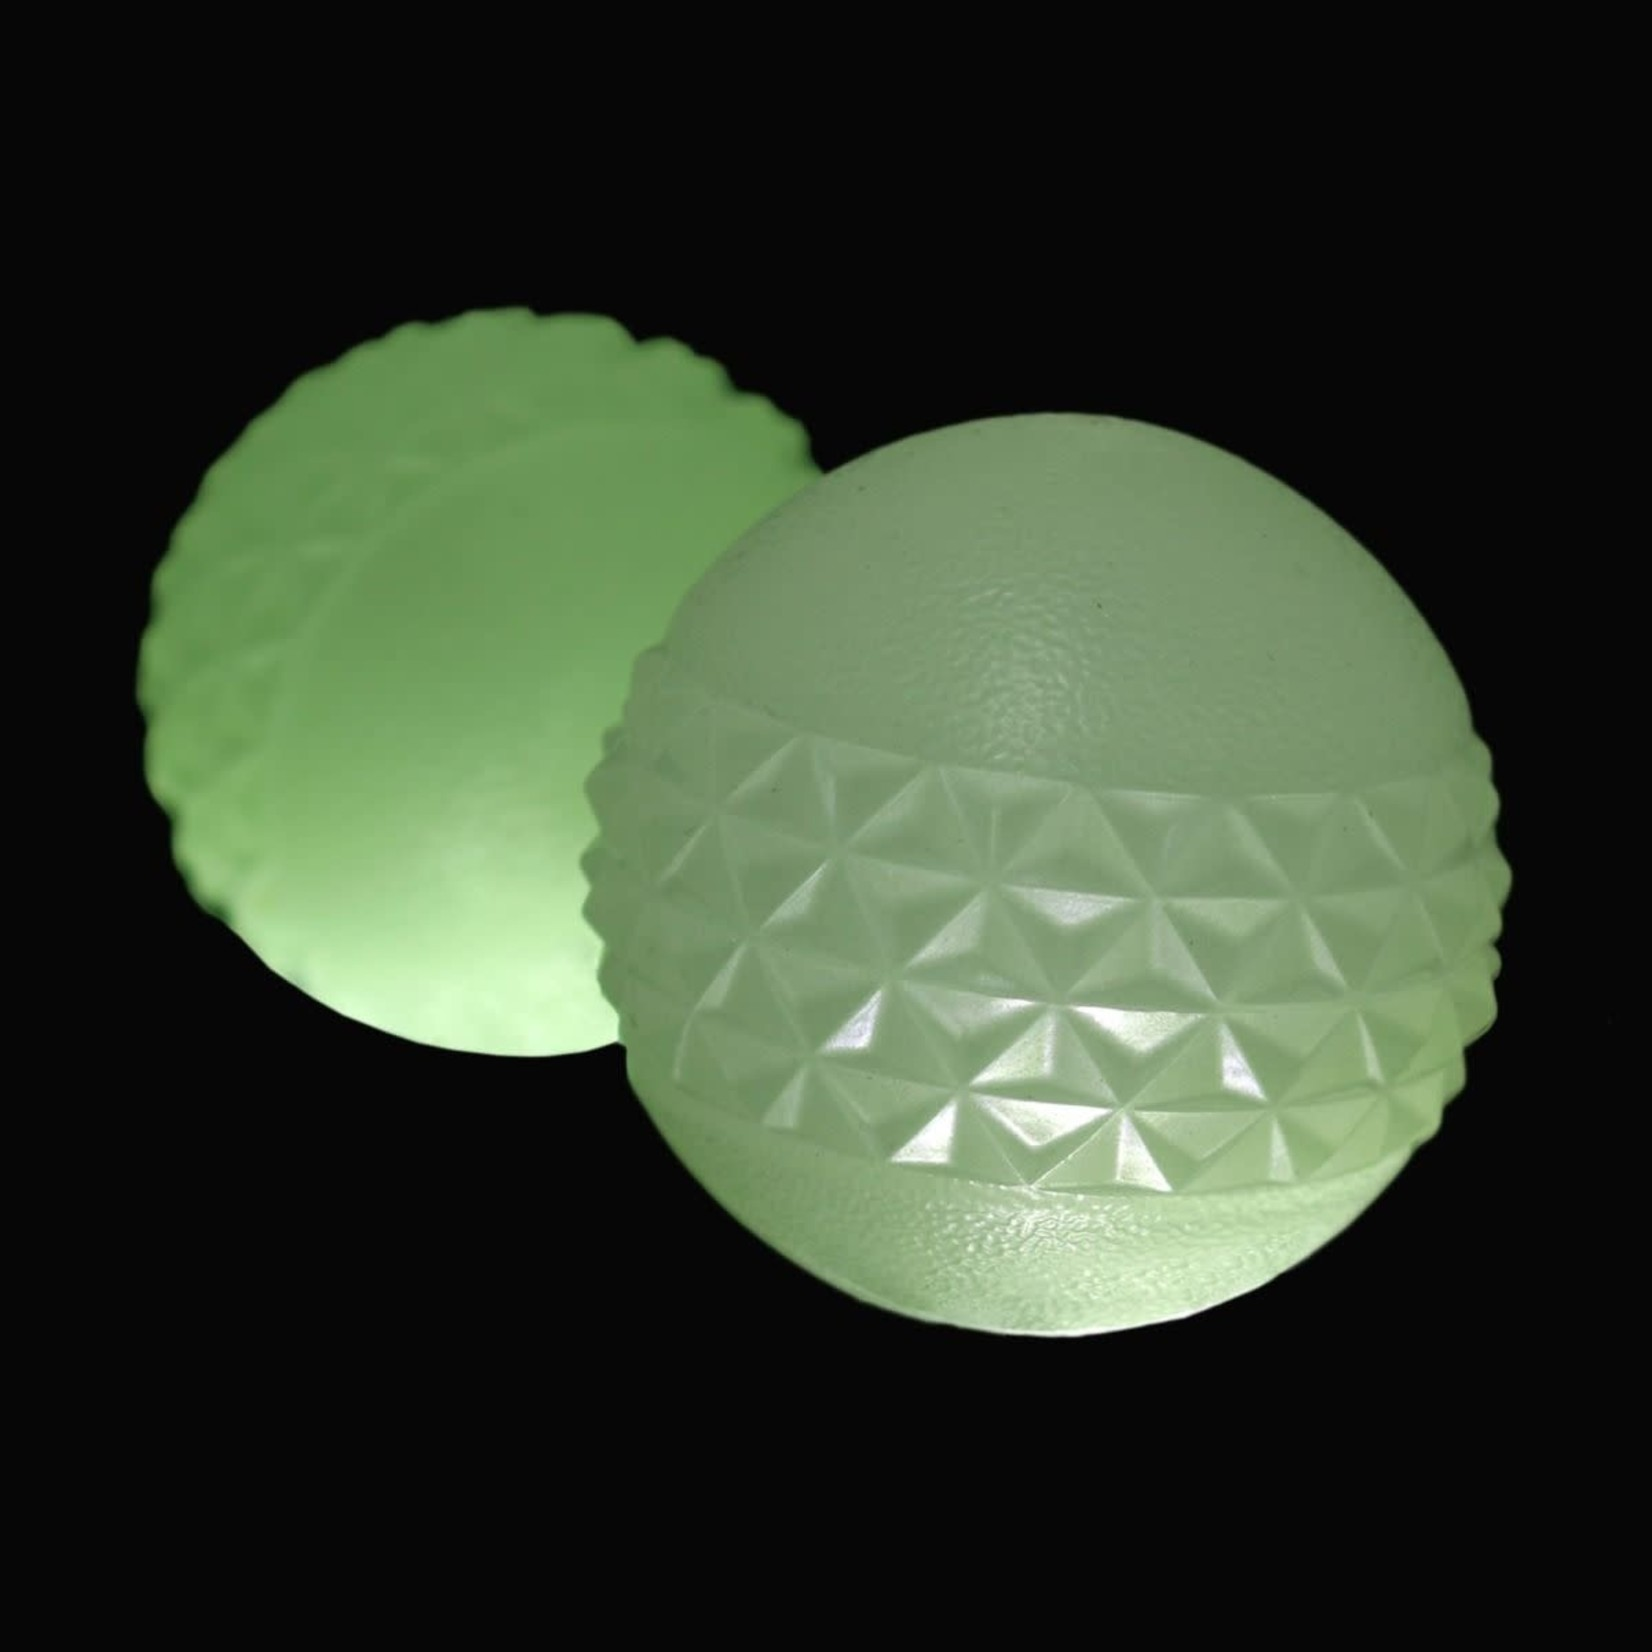 Tall Tails Tall Tails Fetch Balls Glow In The Dark 2 Pack